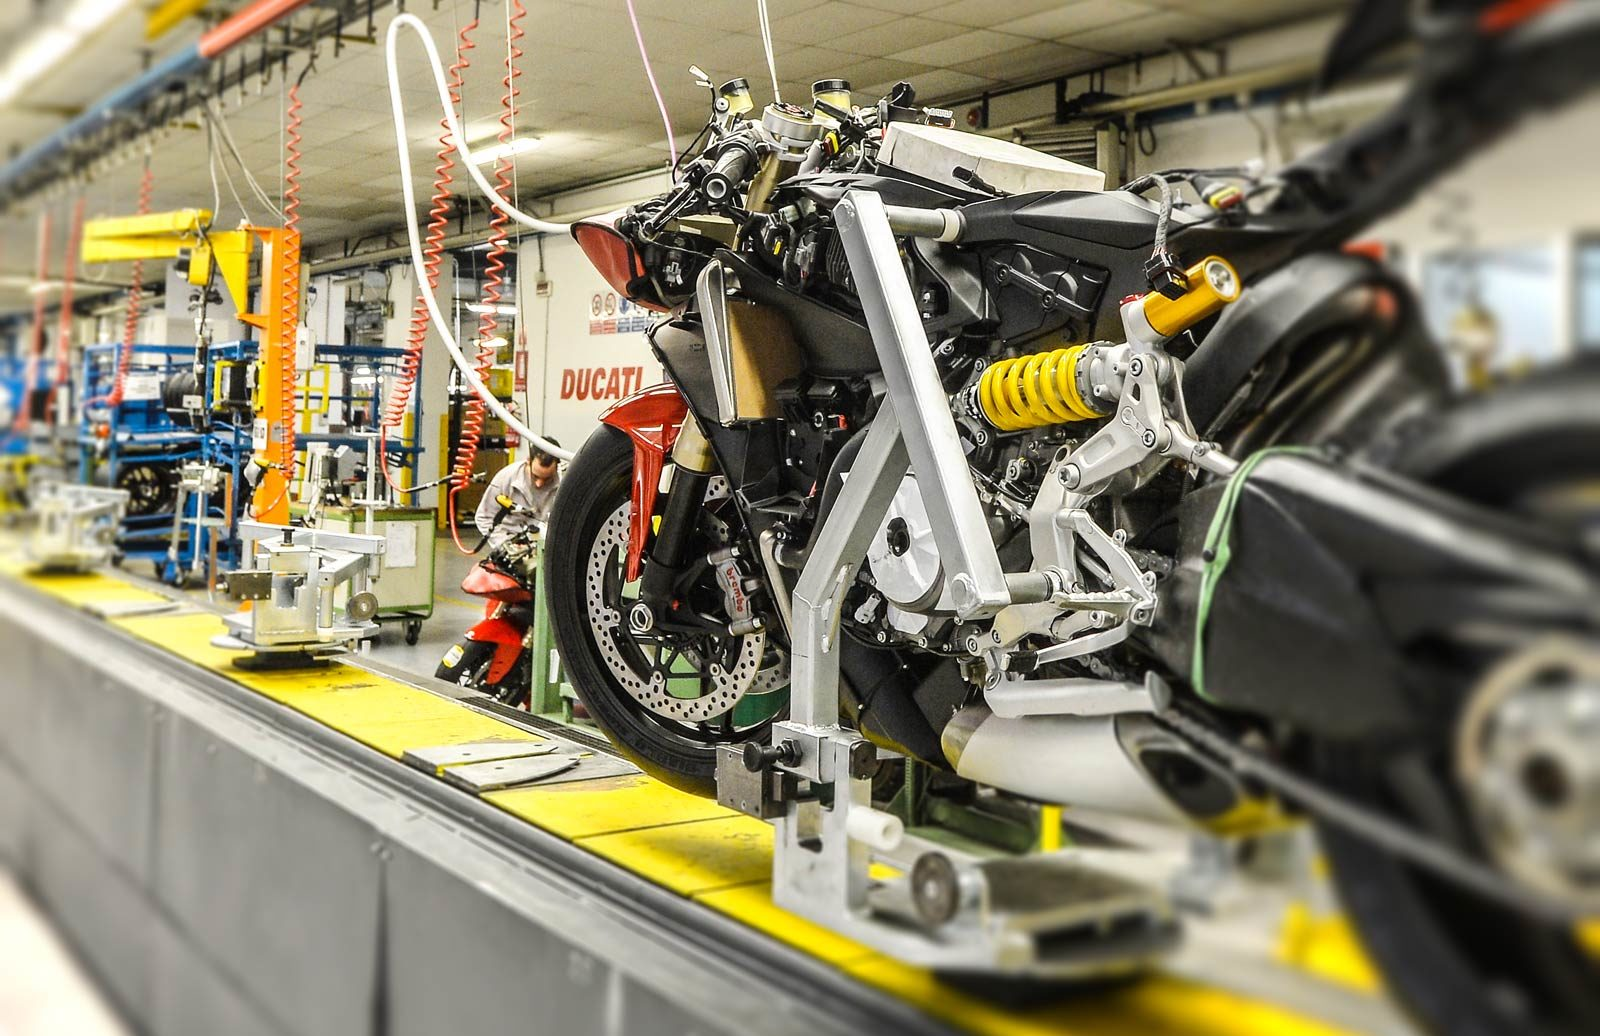 Ducati Factory guided tour